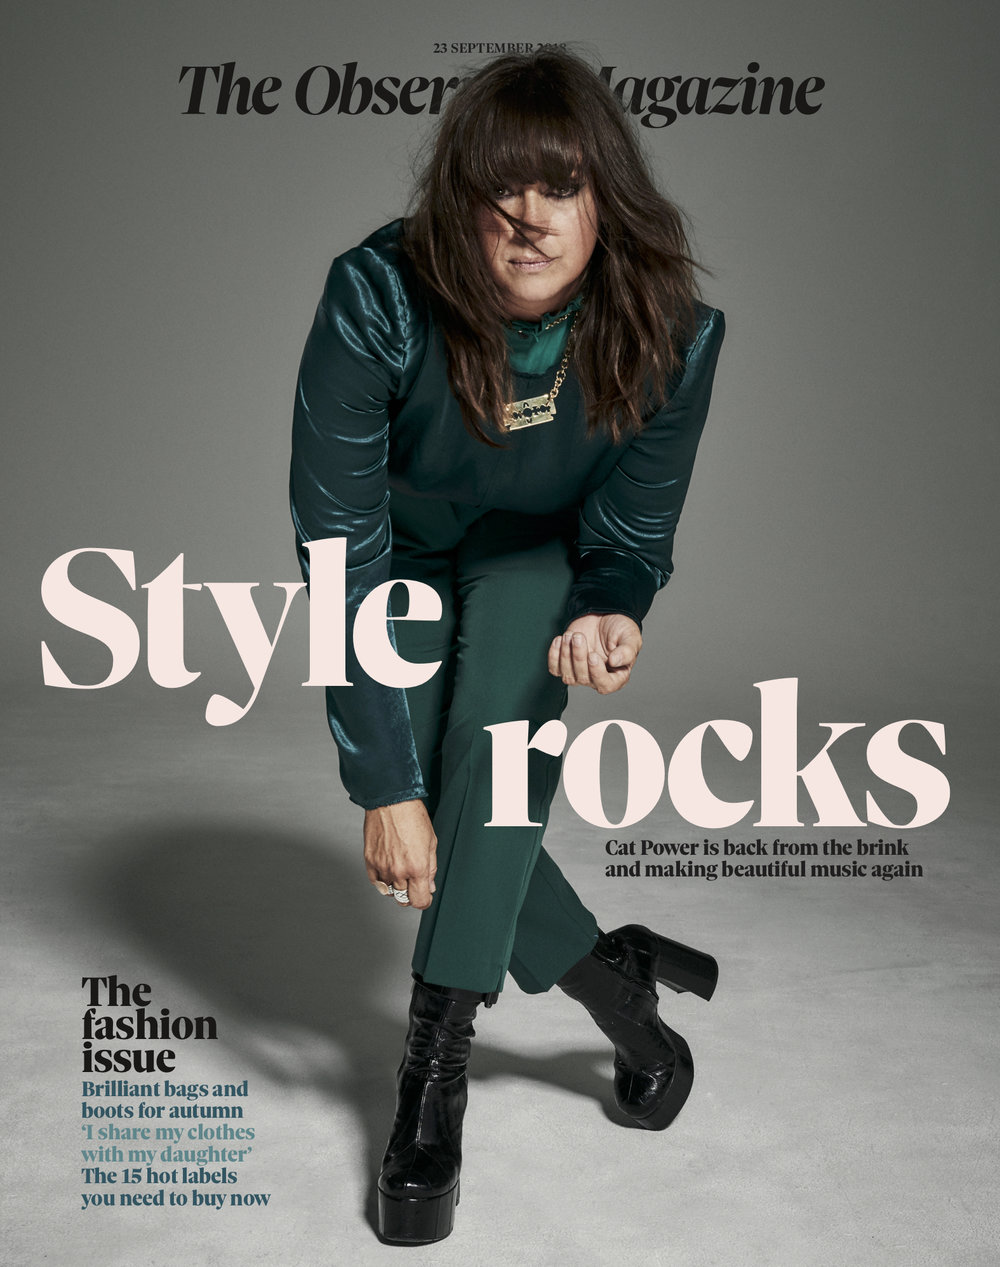 Cat Power, The Observer Magazine